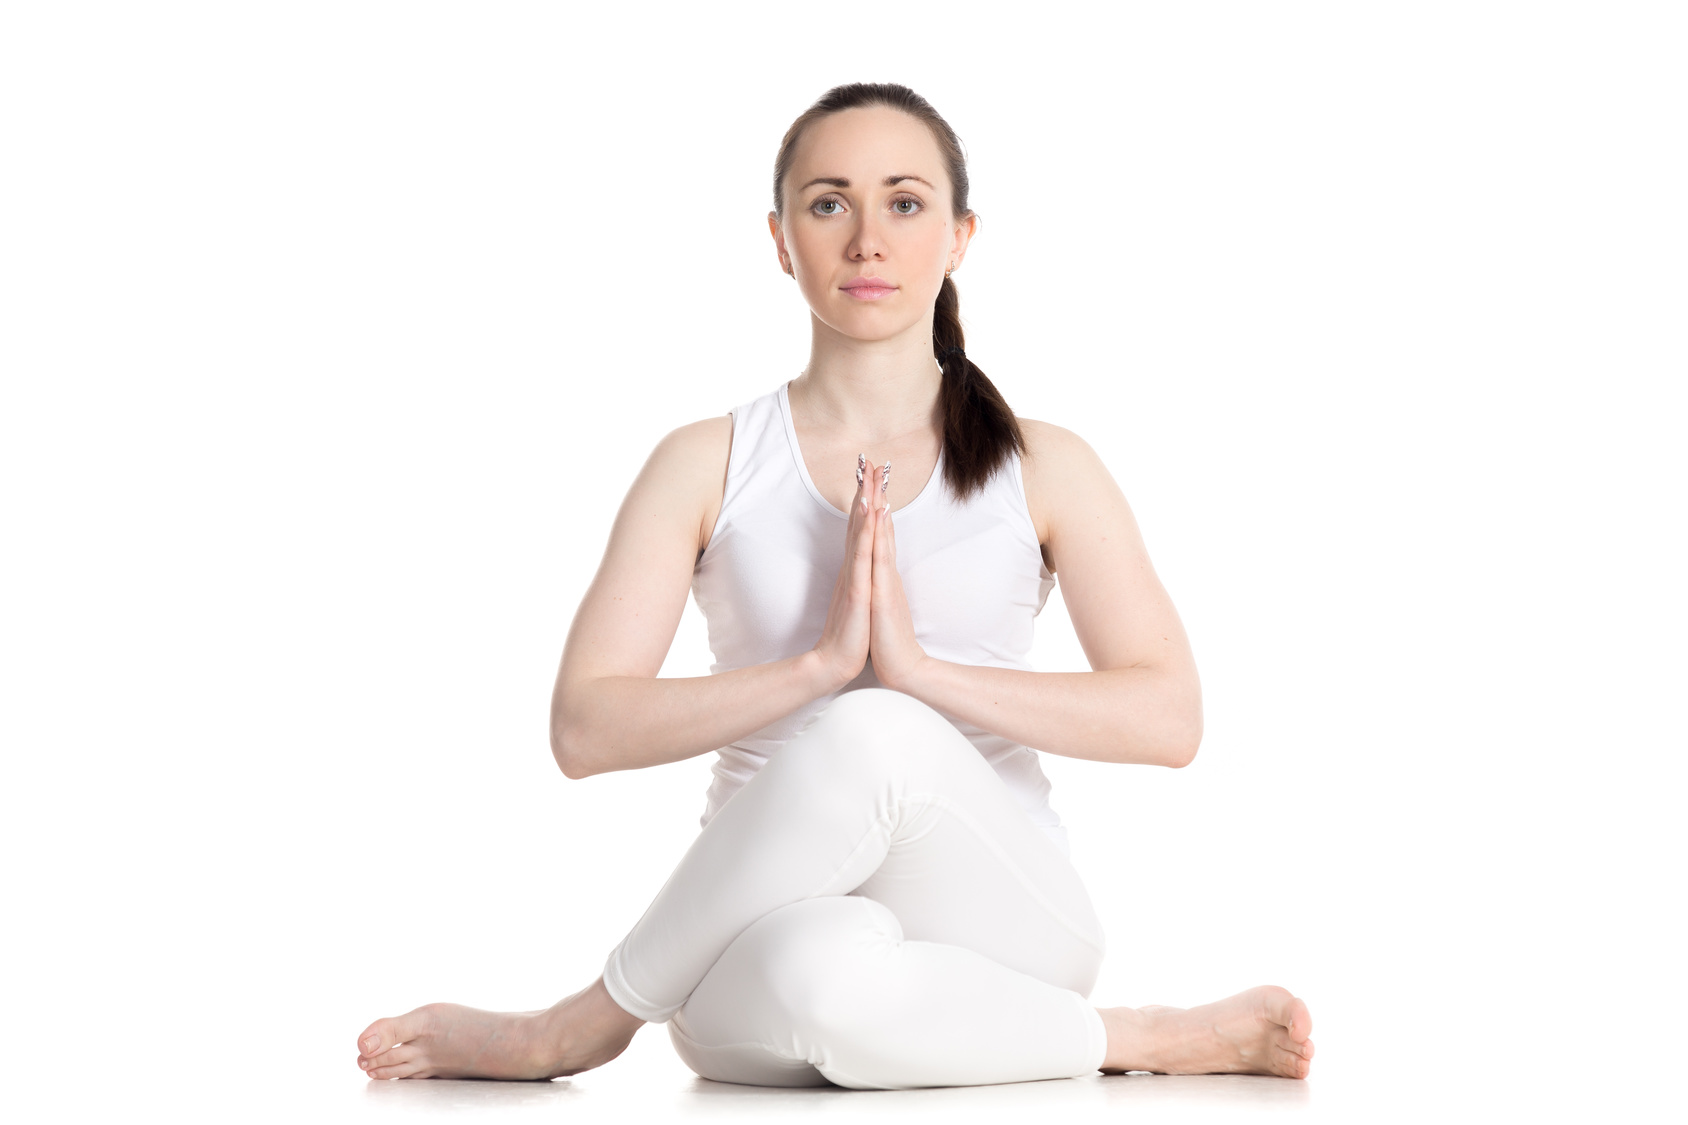 Woman practicing gomukhasana (cow face yoga pose) to stretch the gluteal muscles